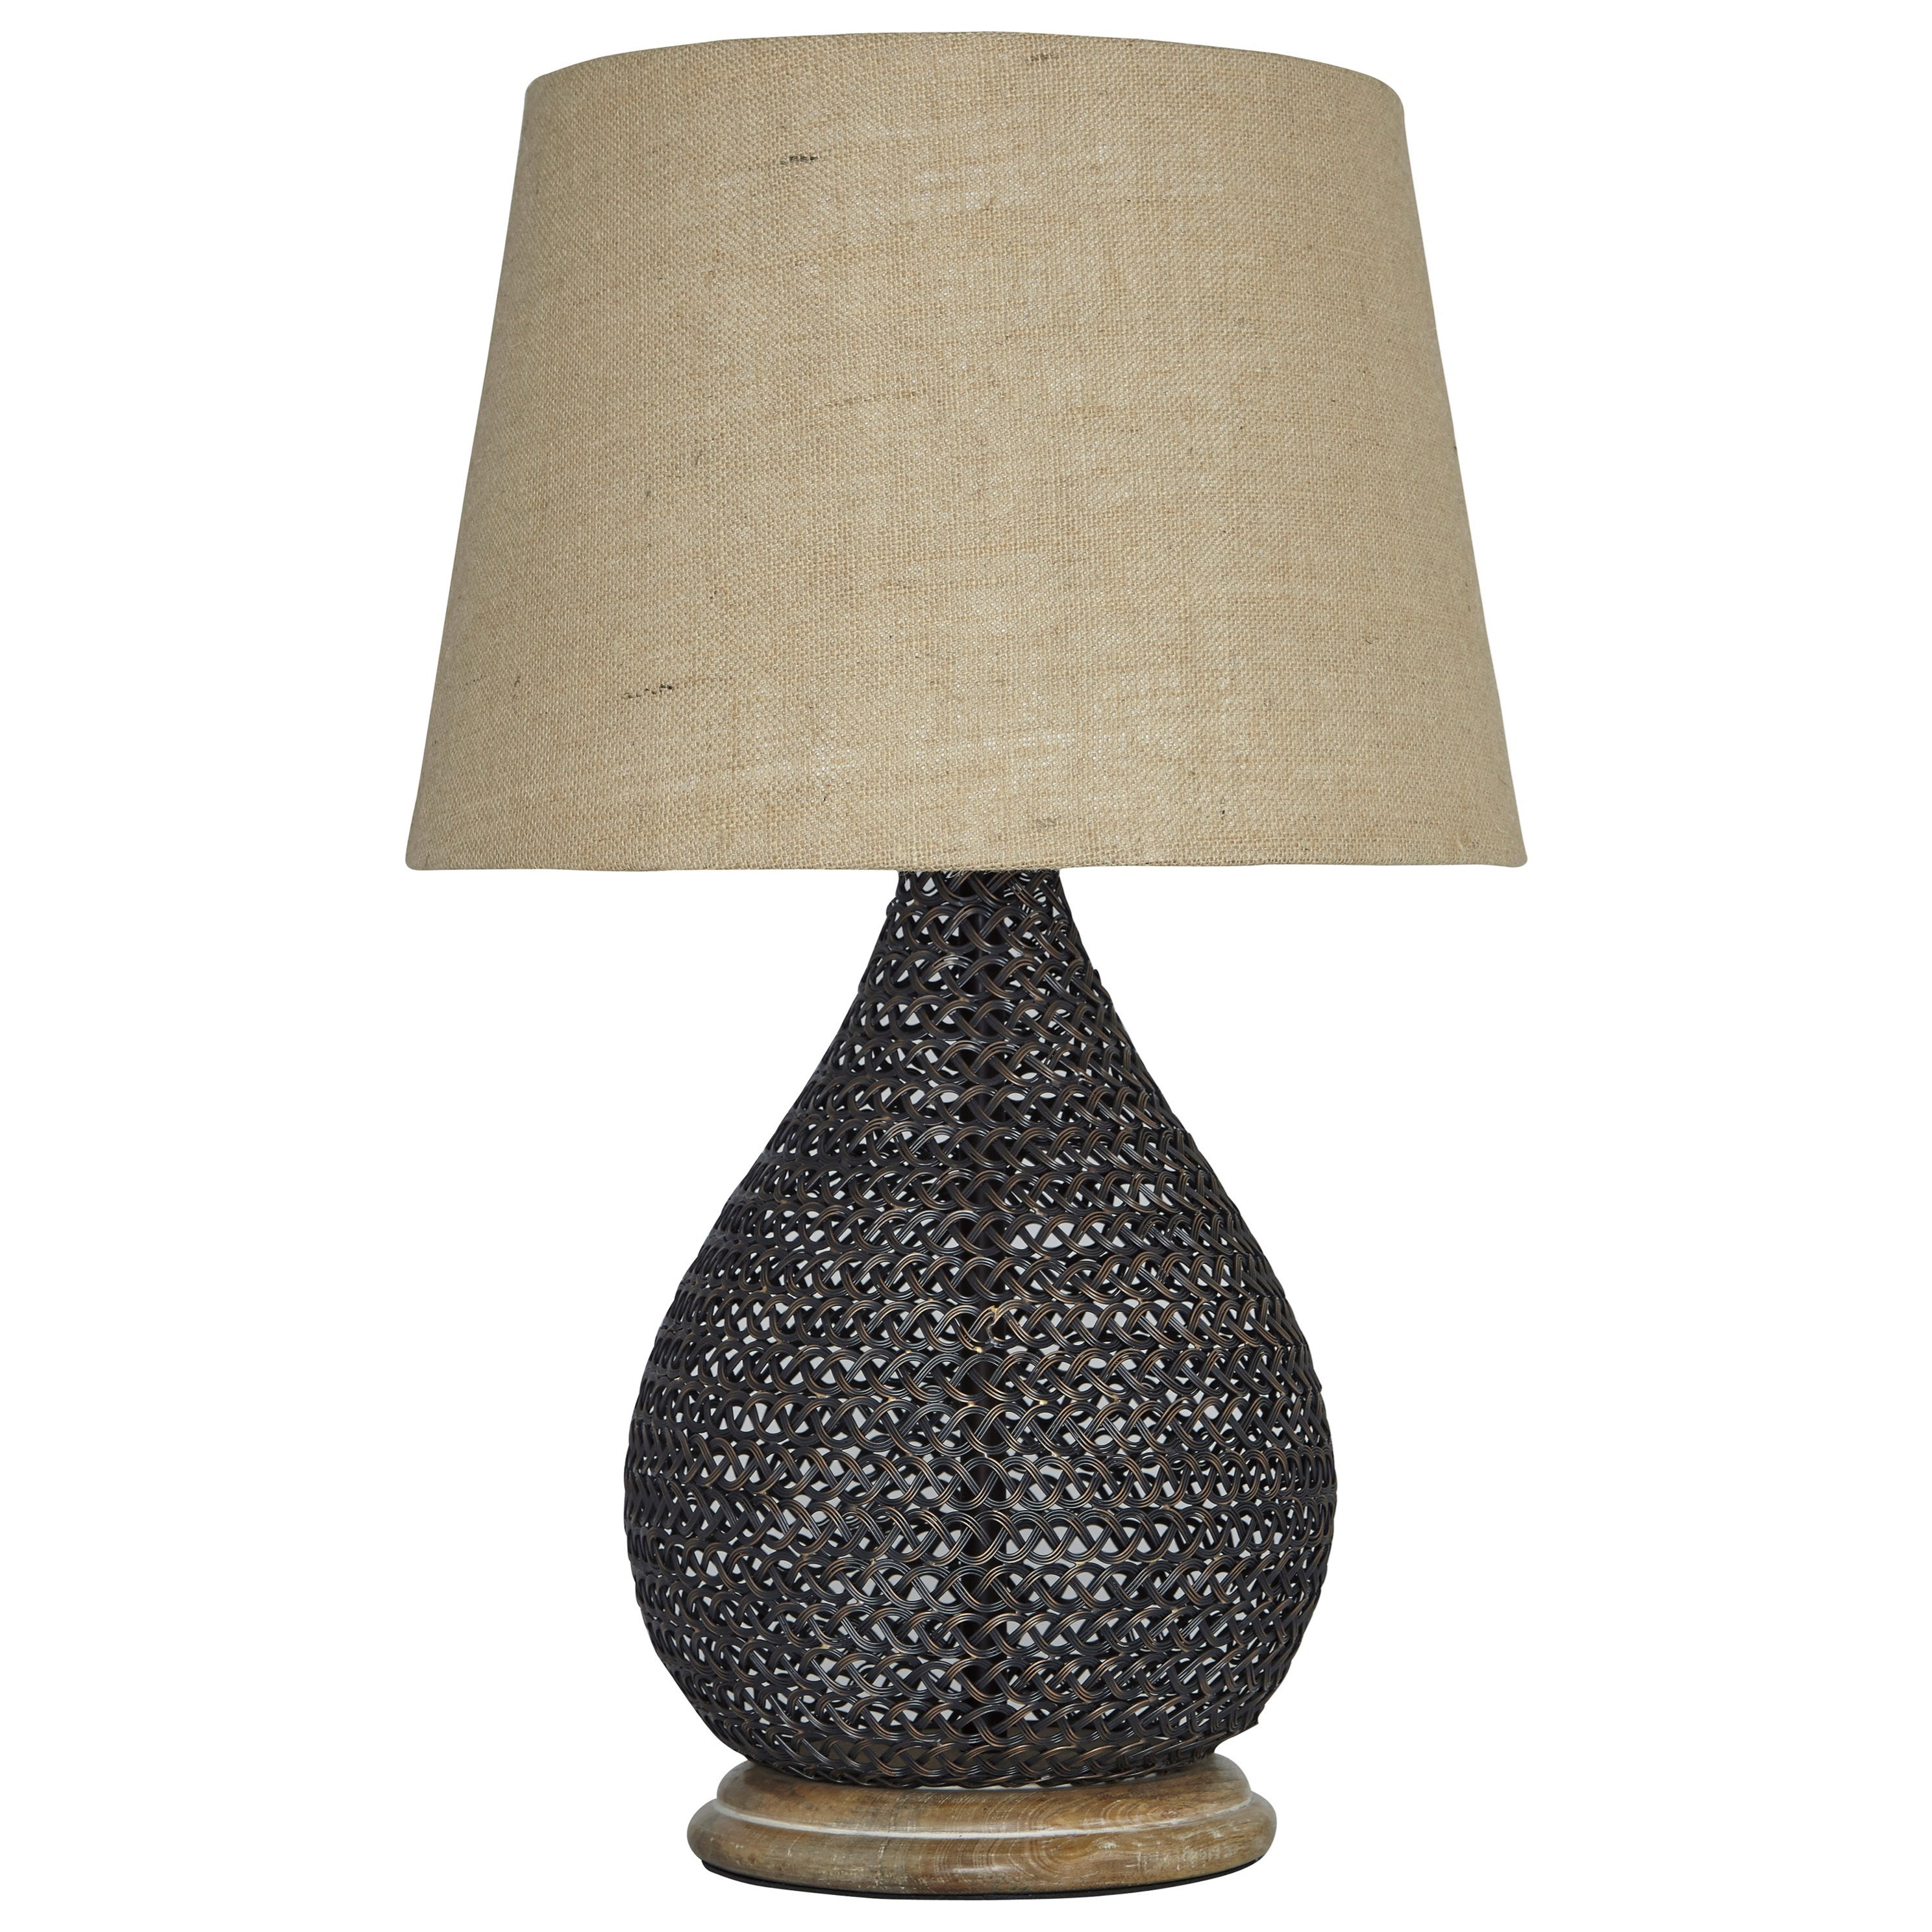 Signature Design by Ashley Lamps - Vintage Style Aimon Bronze Finish Table Lamp - Item Number: L207064